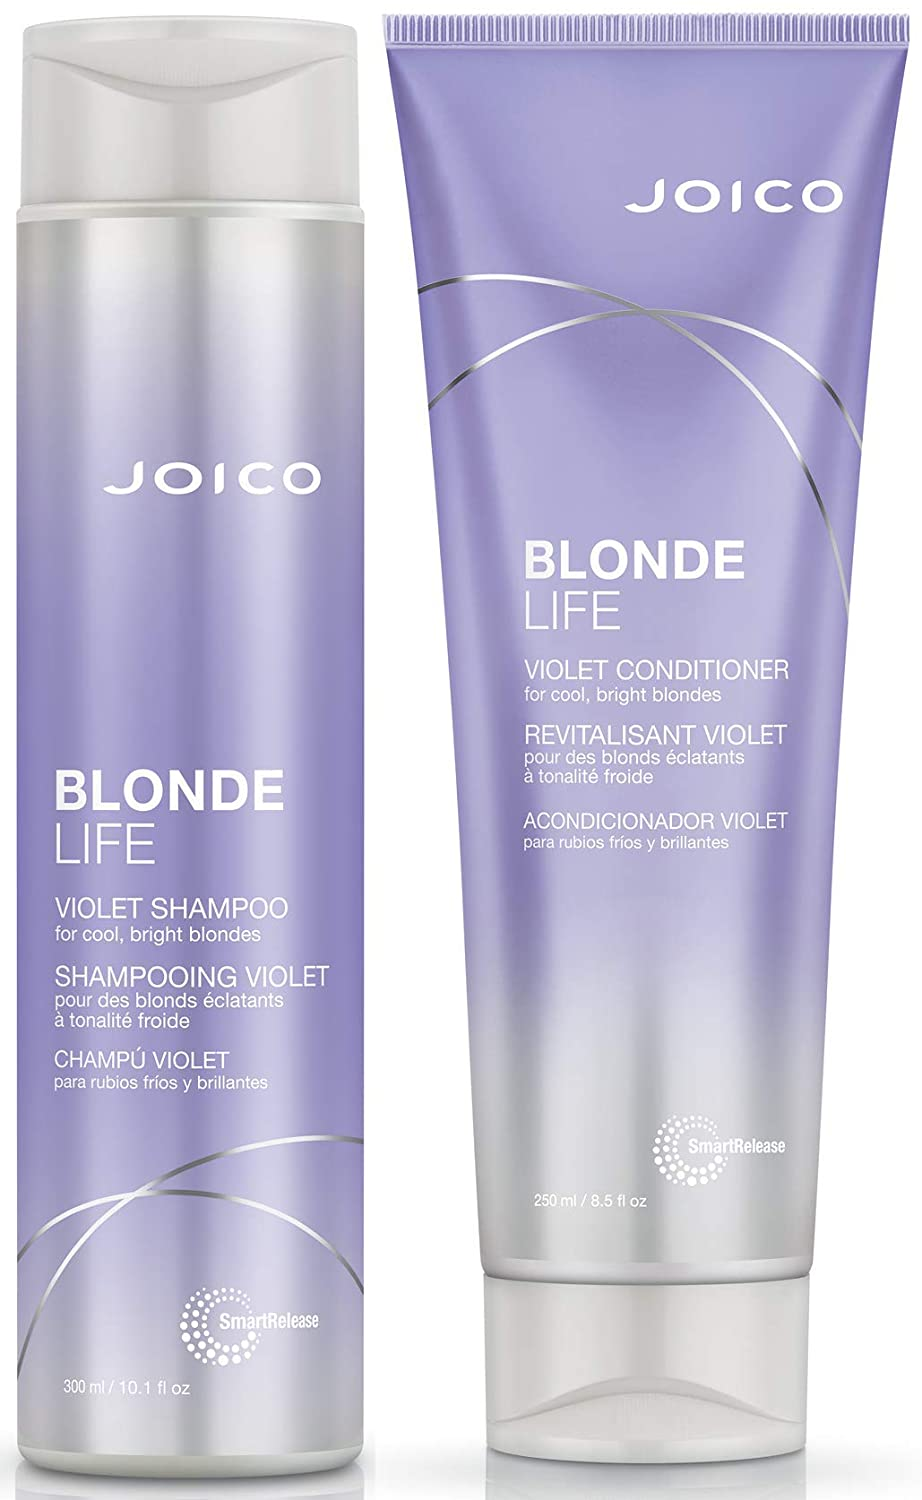 Joico Blonde life violet shampoo and conditioner, 20.2 Ounce